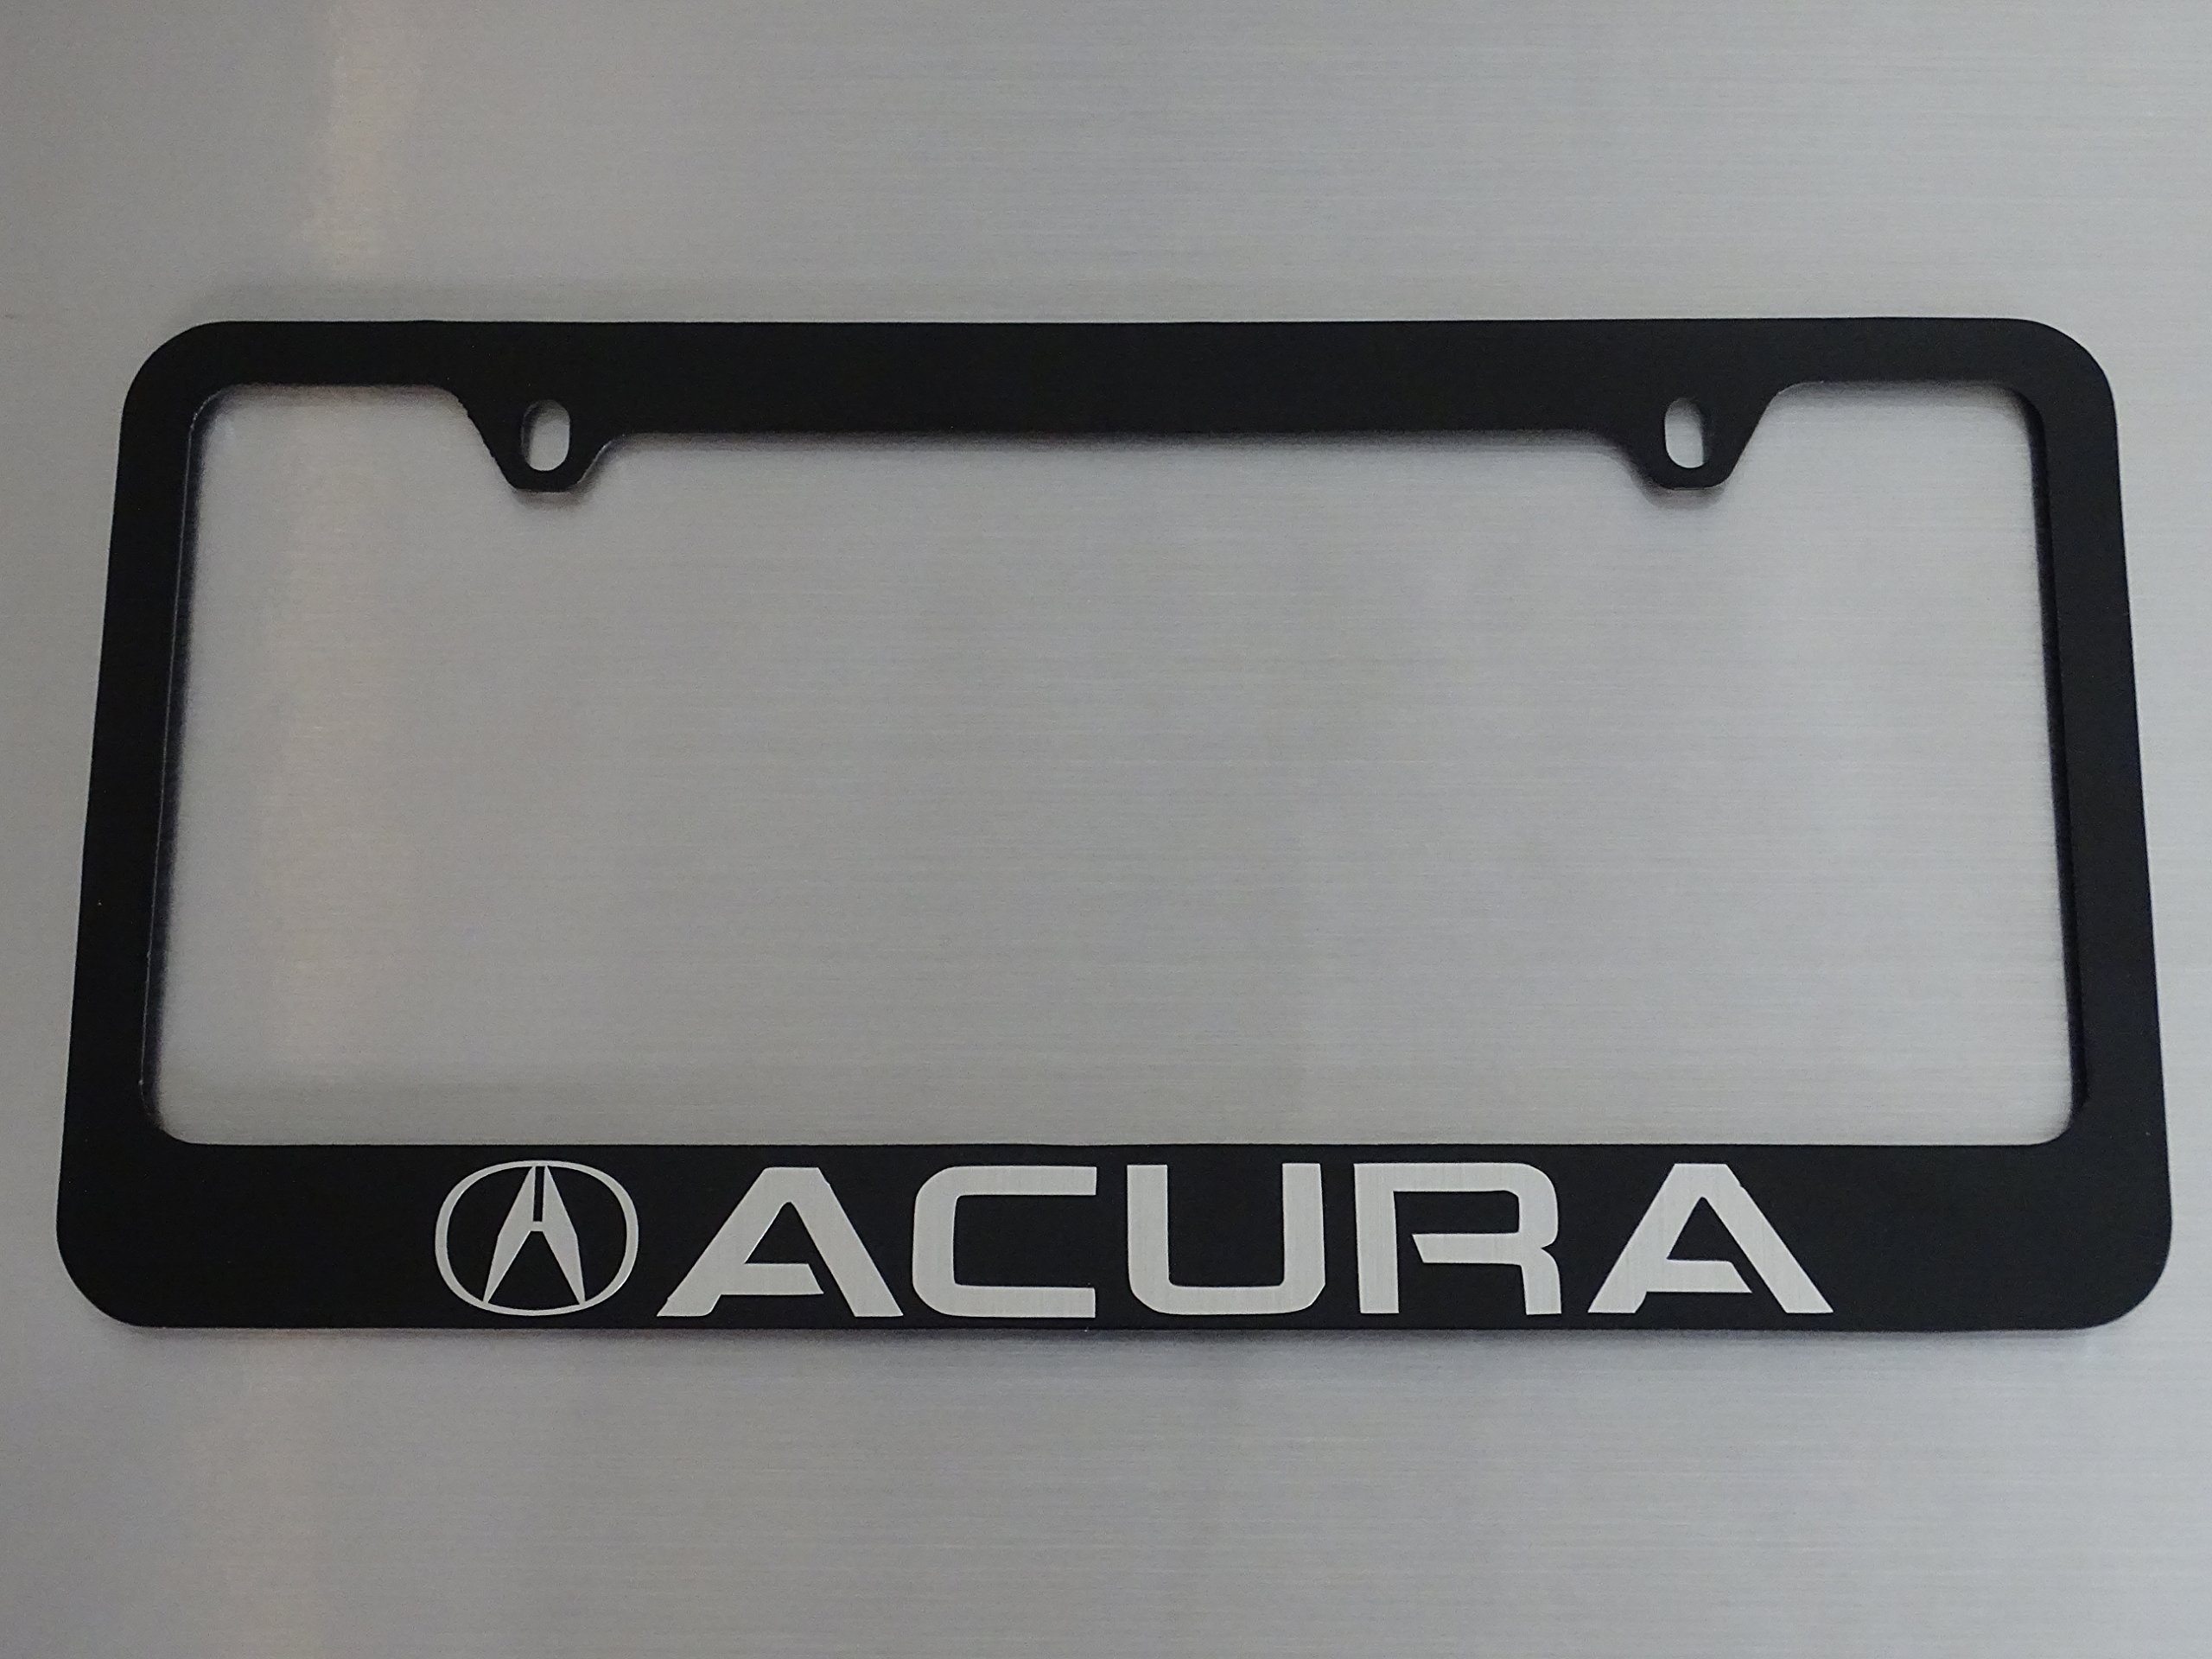 Acura license plate frame, glossy black metal, Brushed aluminum text